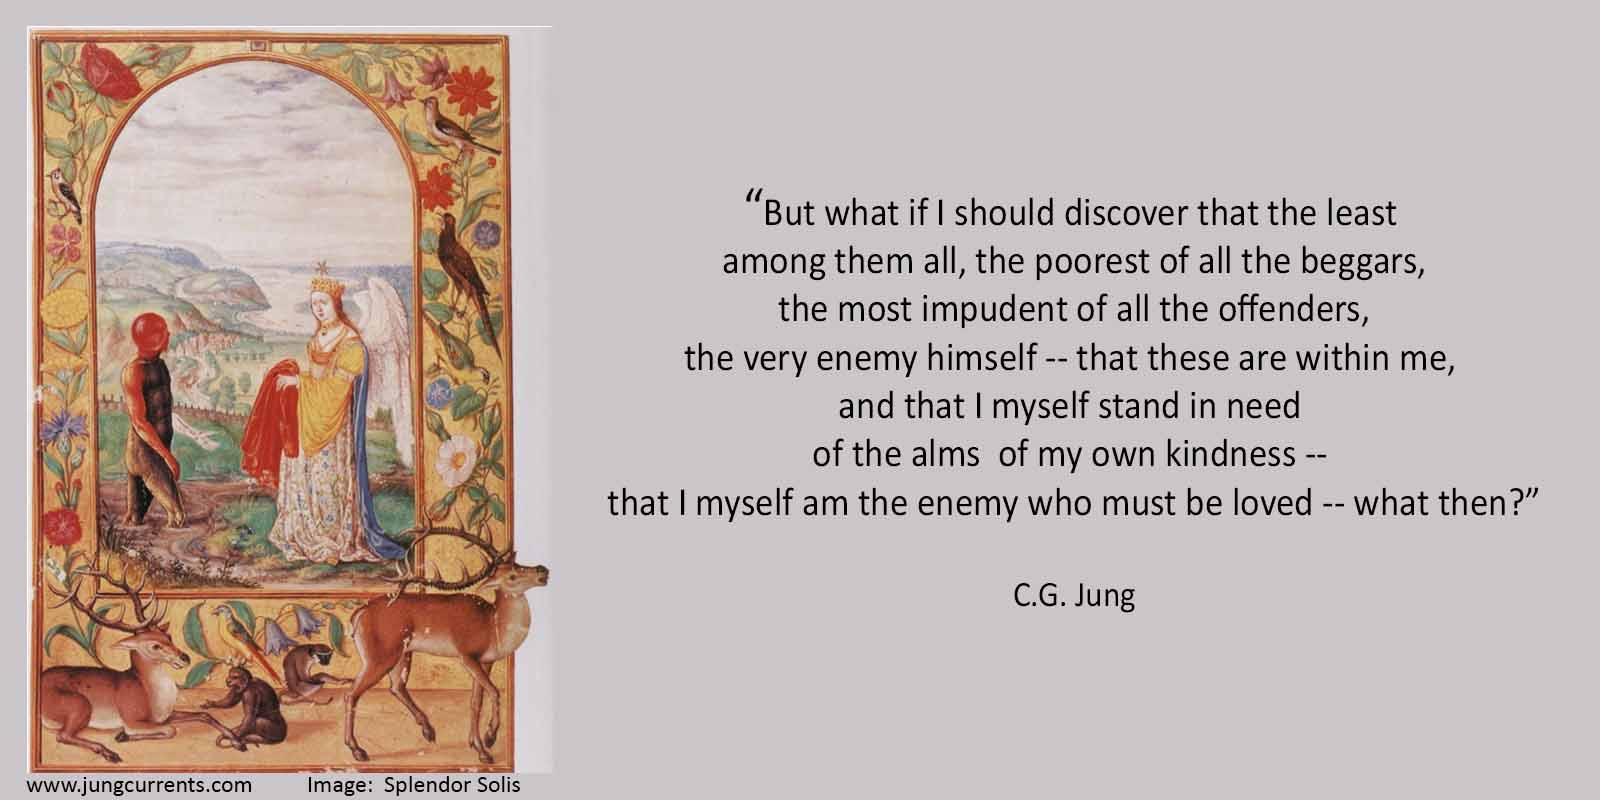 C G Jung I Myself Stand In Need Of The Alms Of My Own Kindness I Myself Am The Enemy Who Must Be Loved Jung Currents